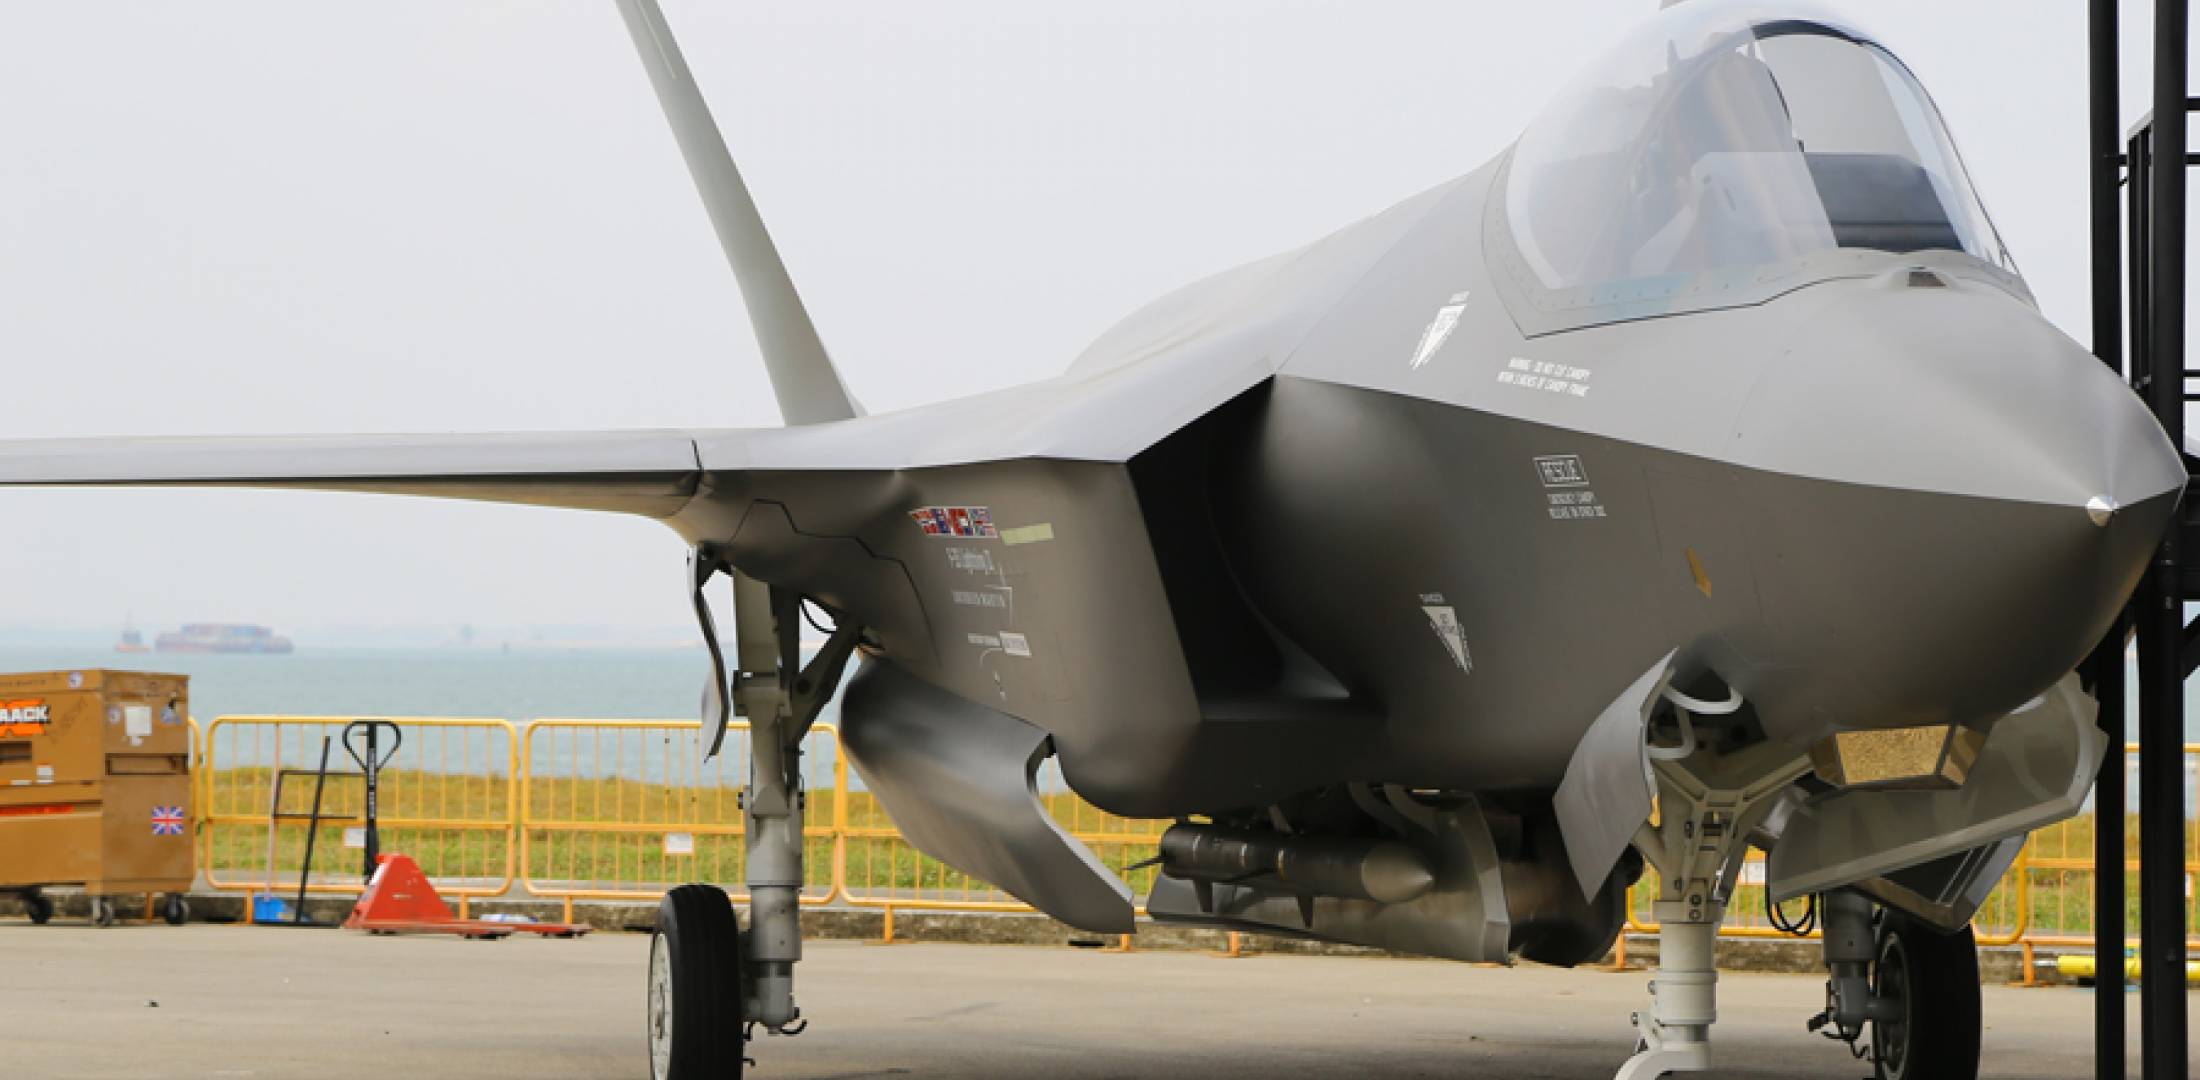 F-35 Mock-up at Singapore Airshow